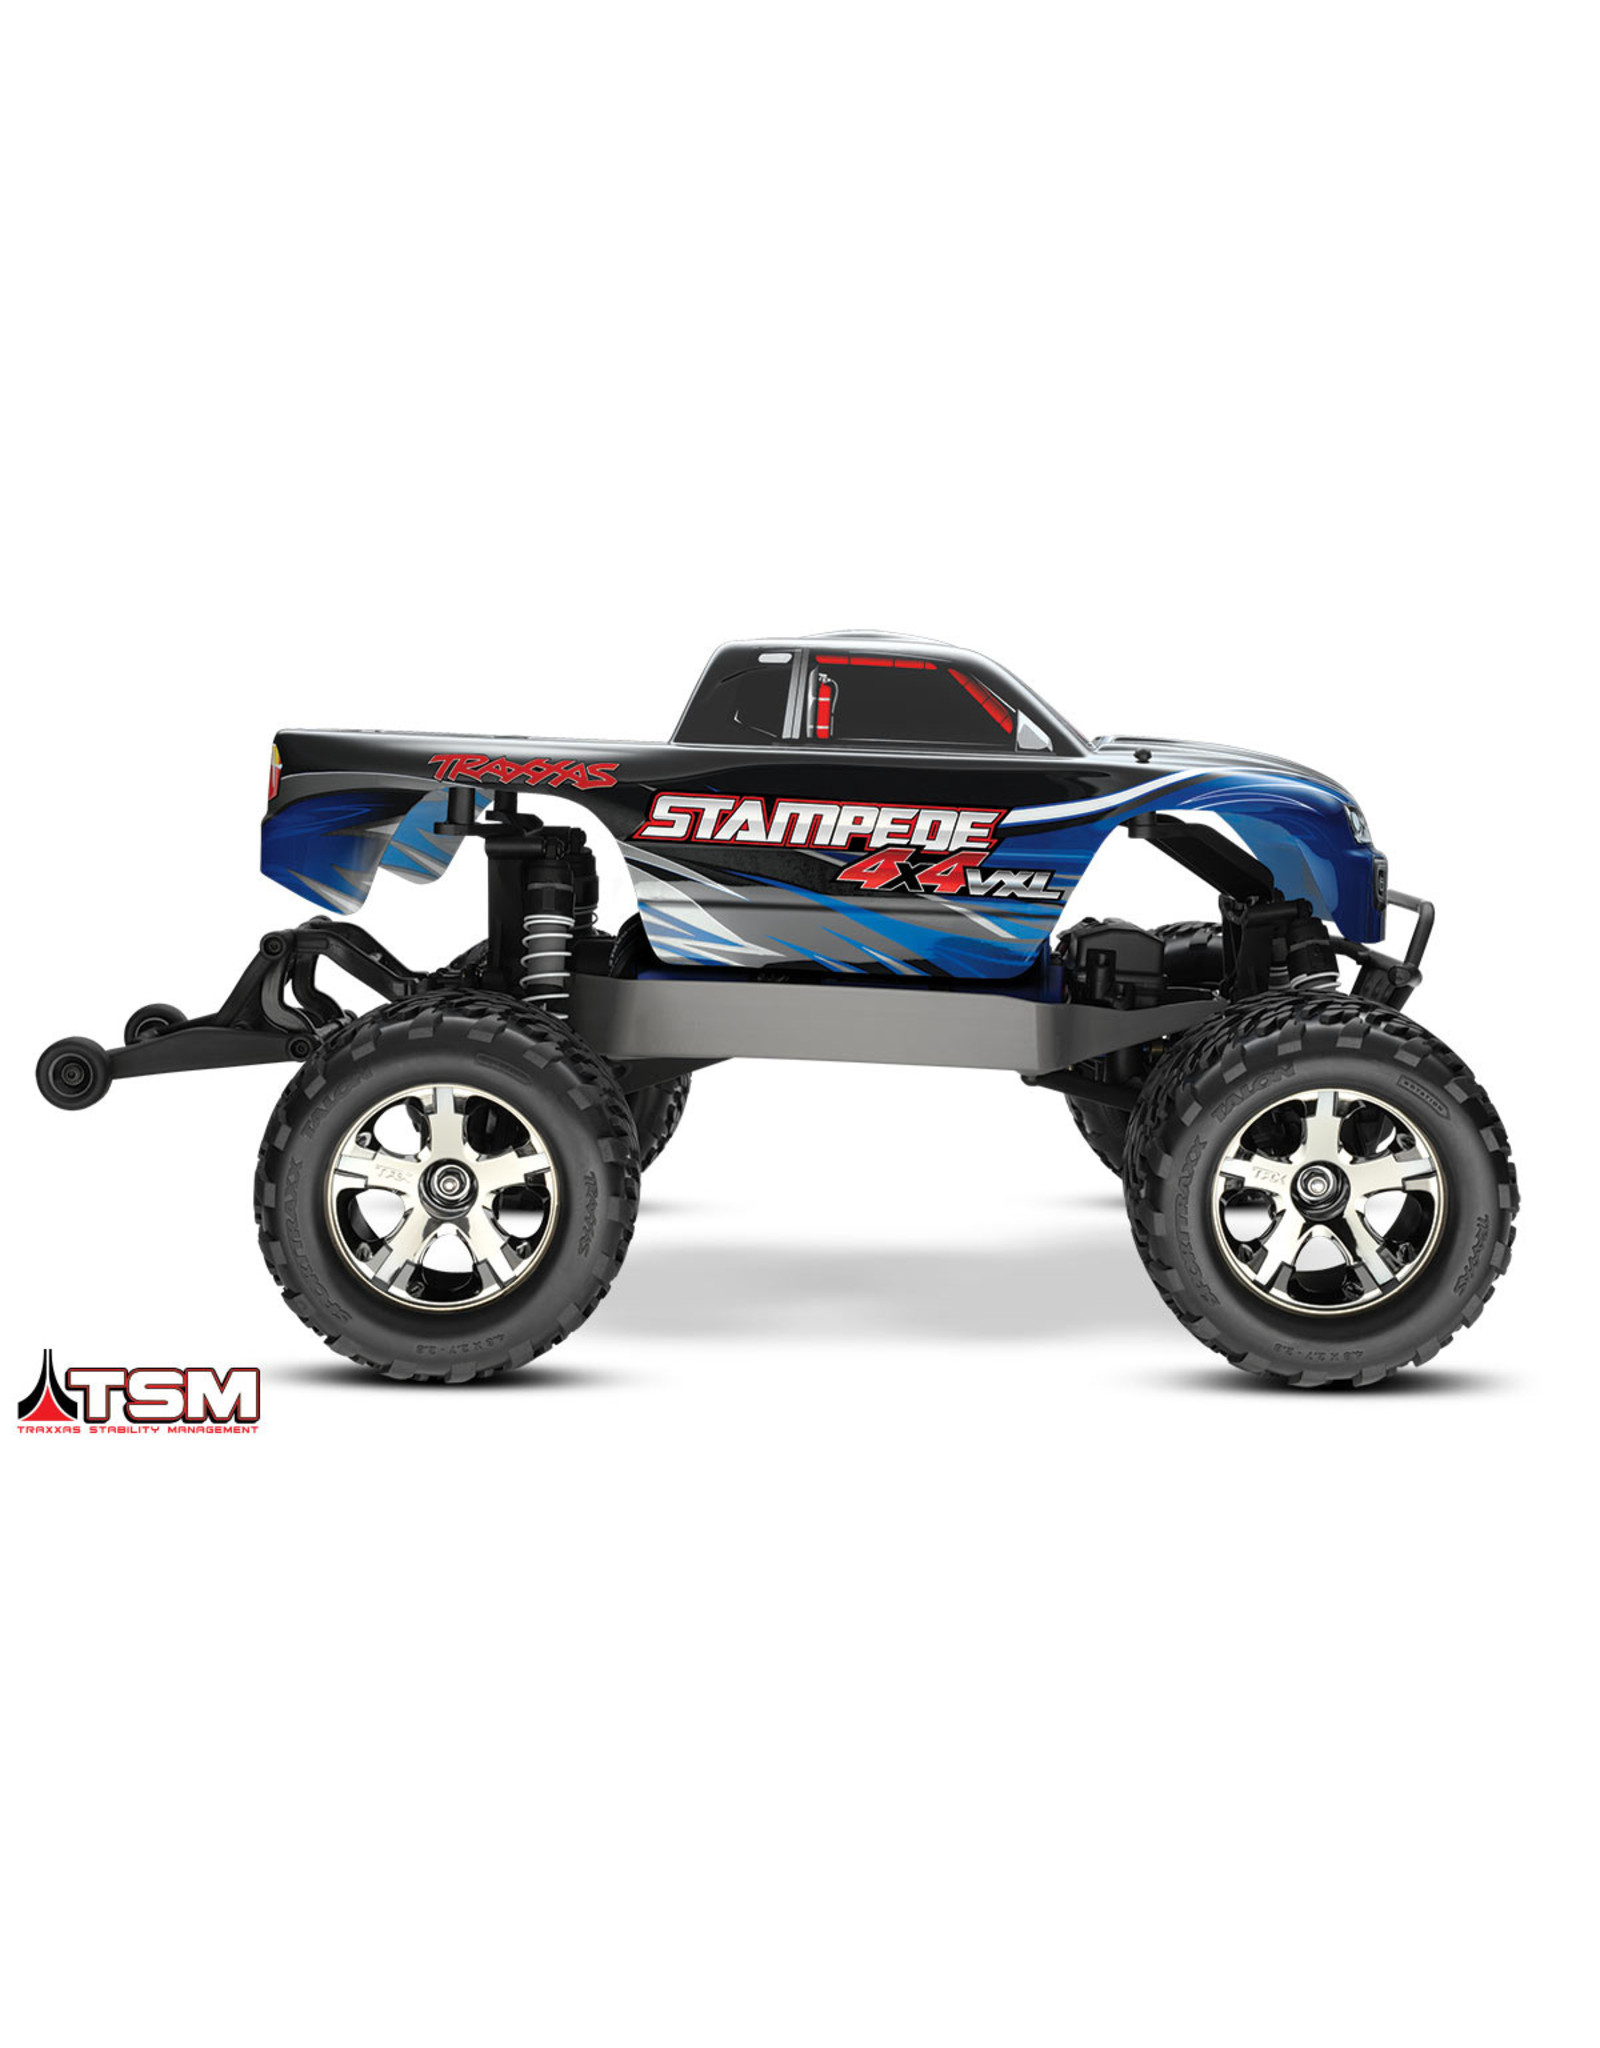 Traxxas 1/10 Stampede 4X4 Brushless VXL (BLUE) (67086-4)